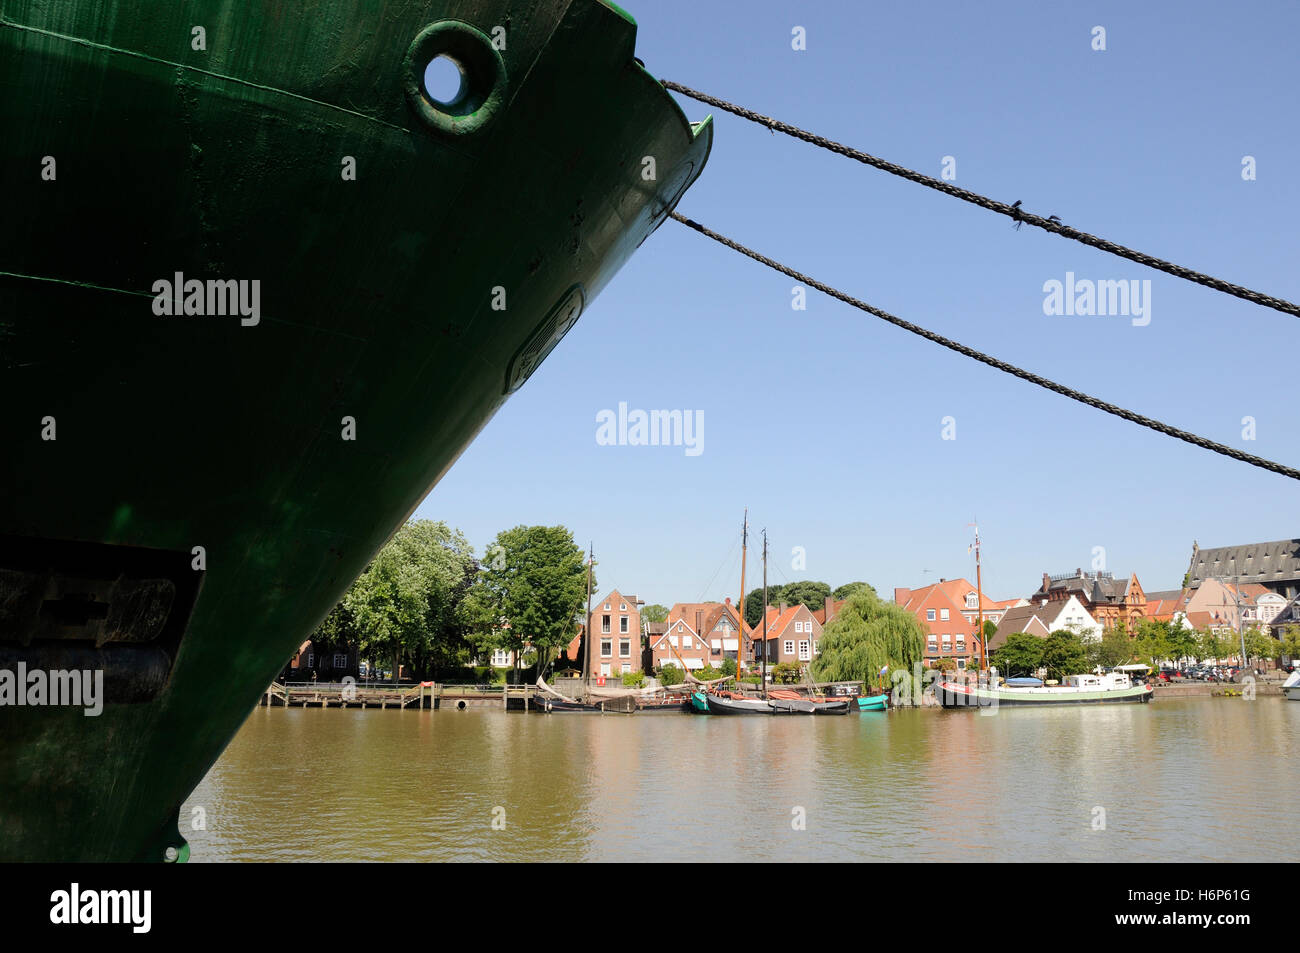 harbor in leer - Stock Image